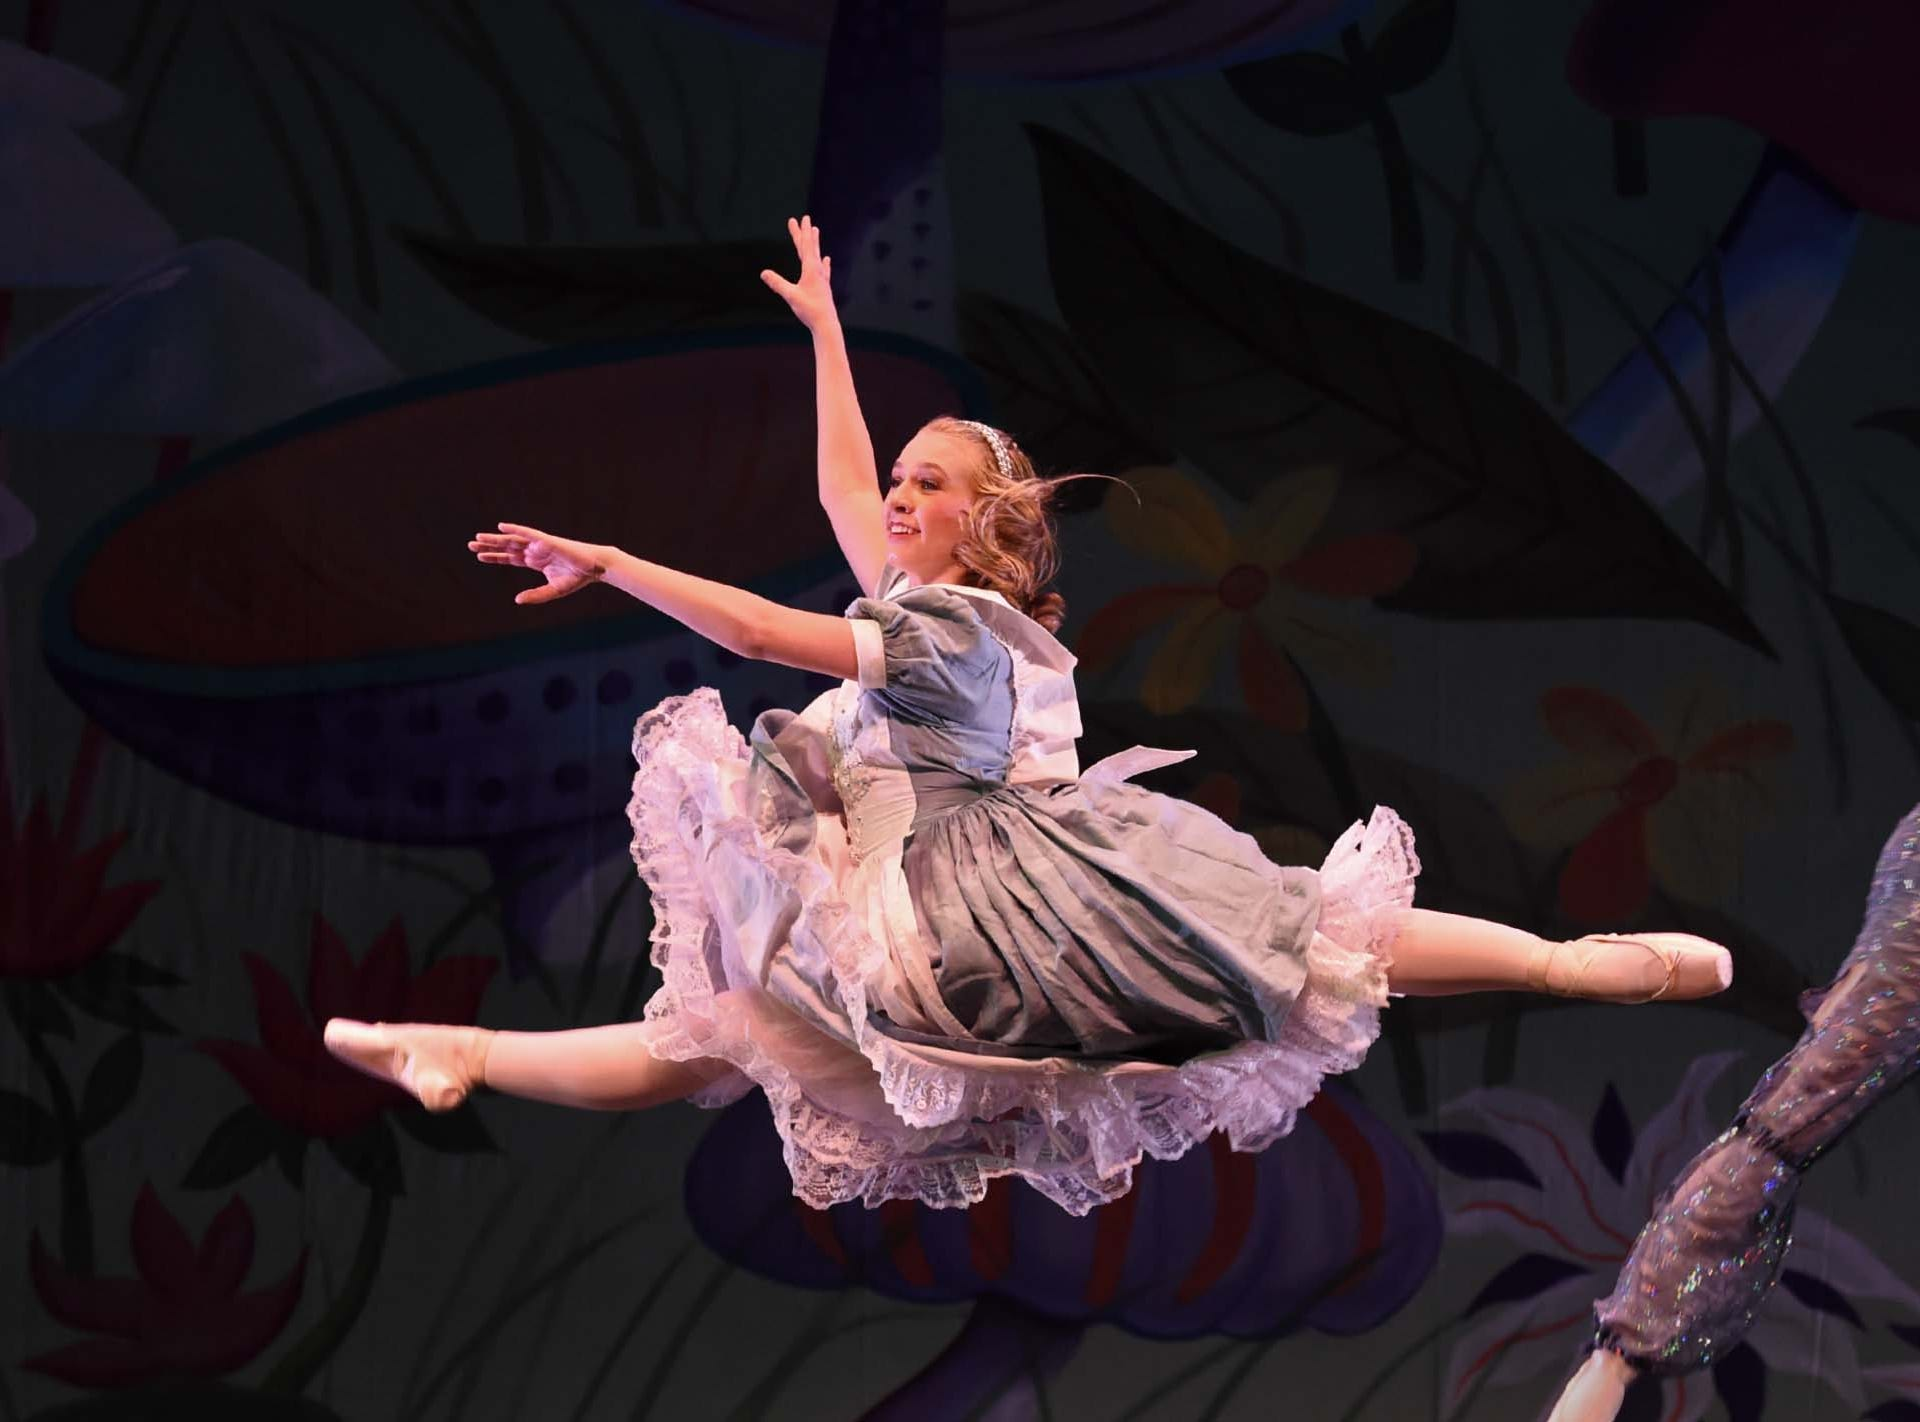 Images from A.V.A. Ballet Theatre's production of Alice in Wonderland at the Pioneer Center for the Performing Arts. 